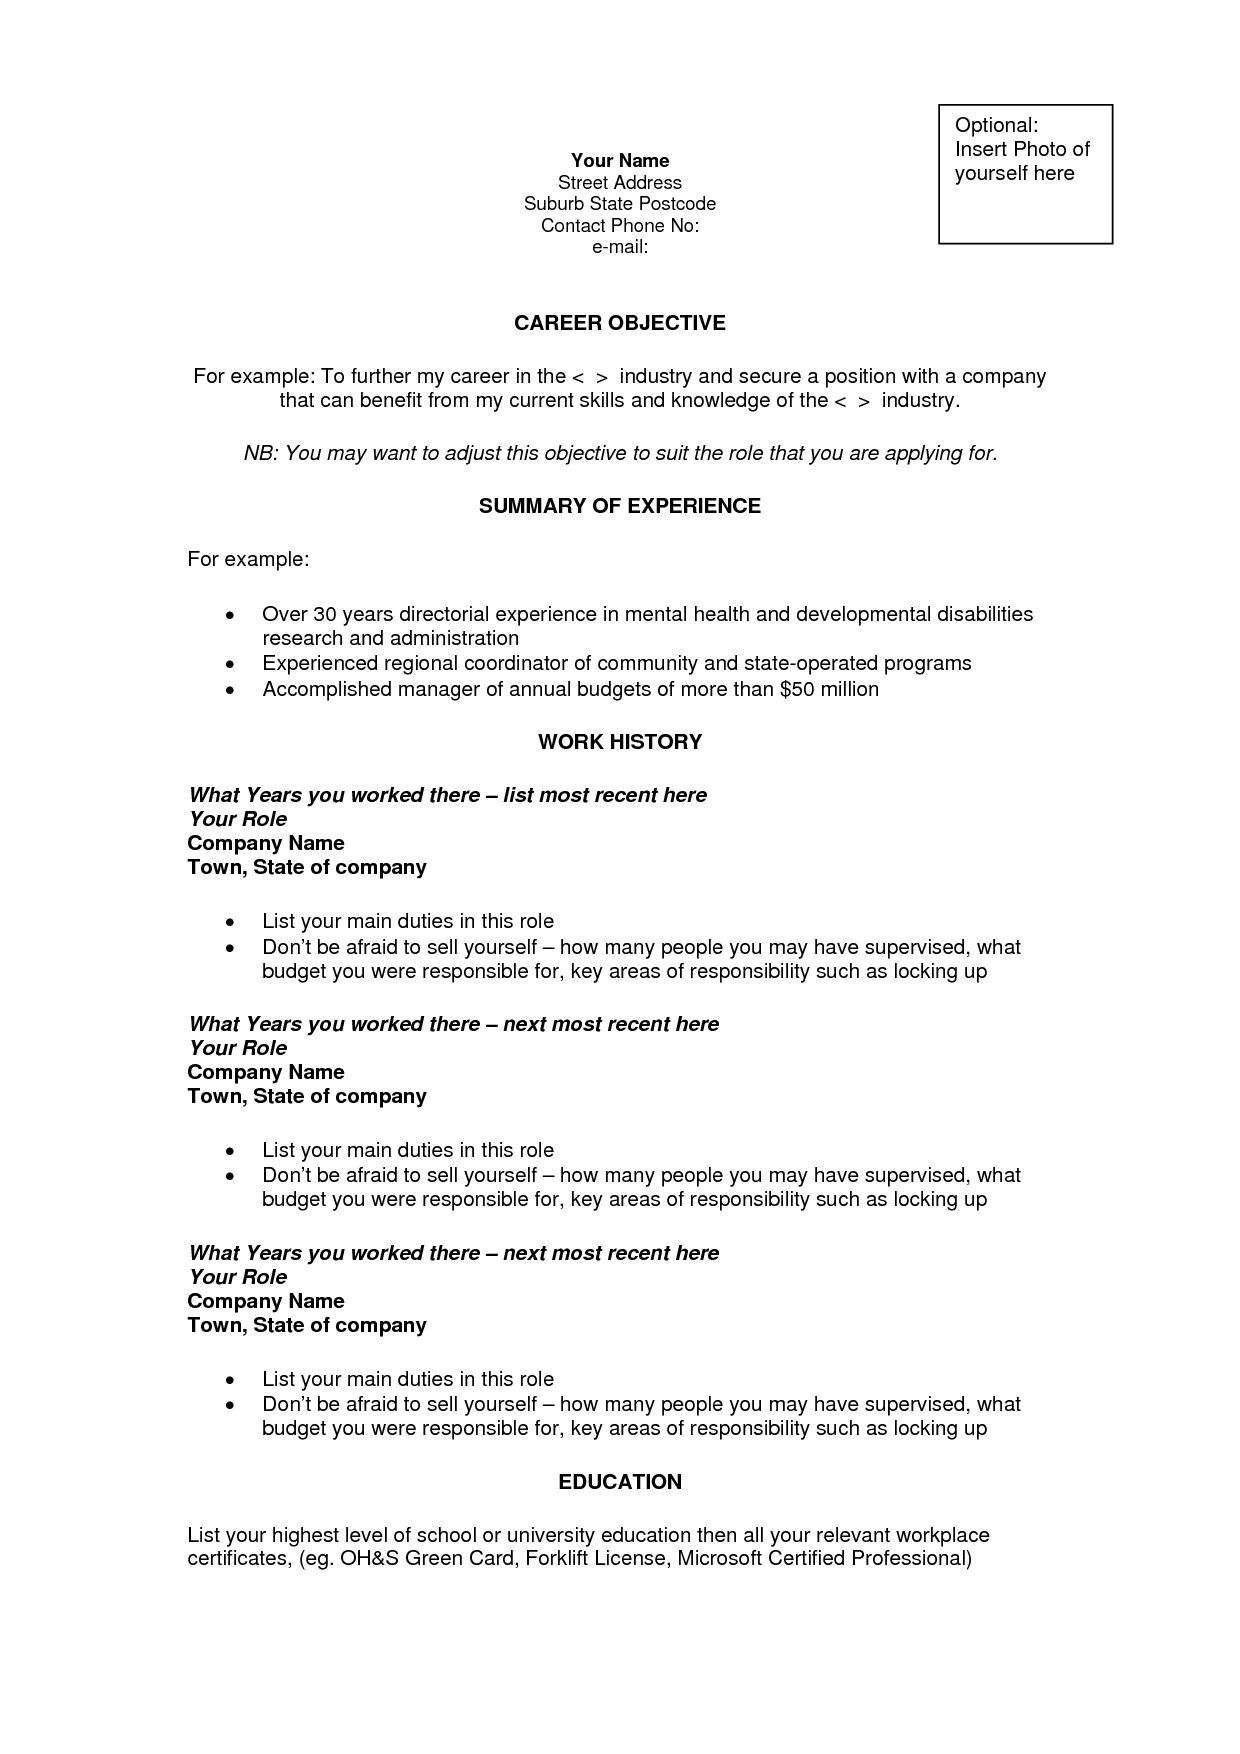 Career Resume How To Write Career Objective With Sample